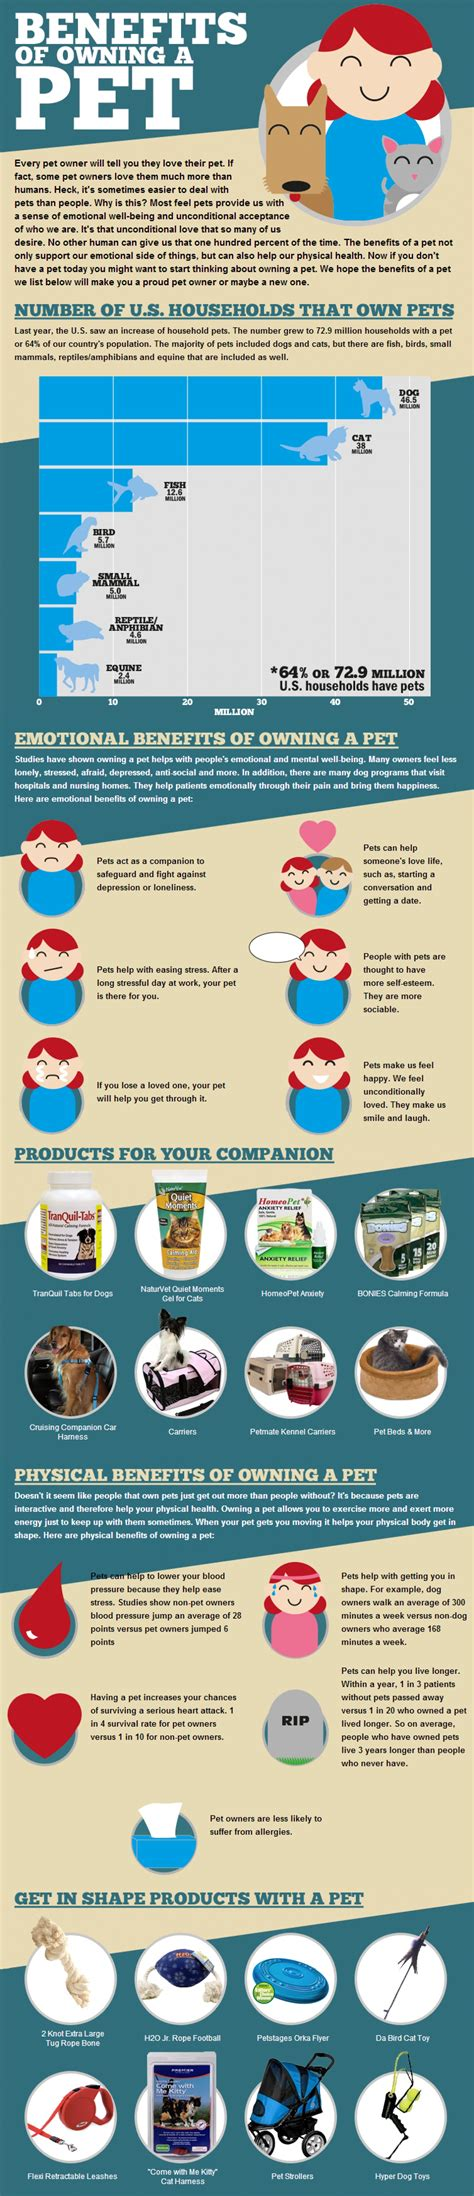 benefits of owning a the benefits of owning a pet infographic visual ly